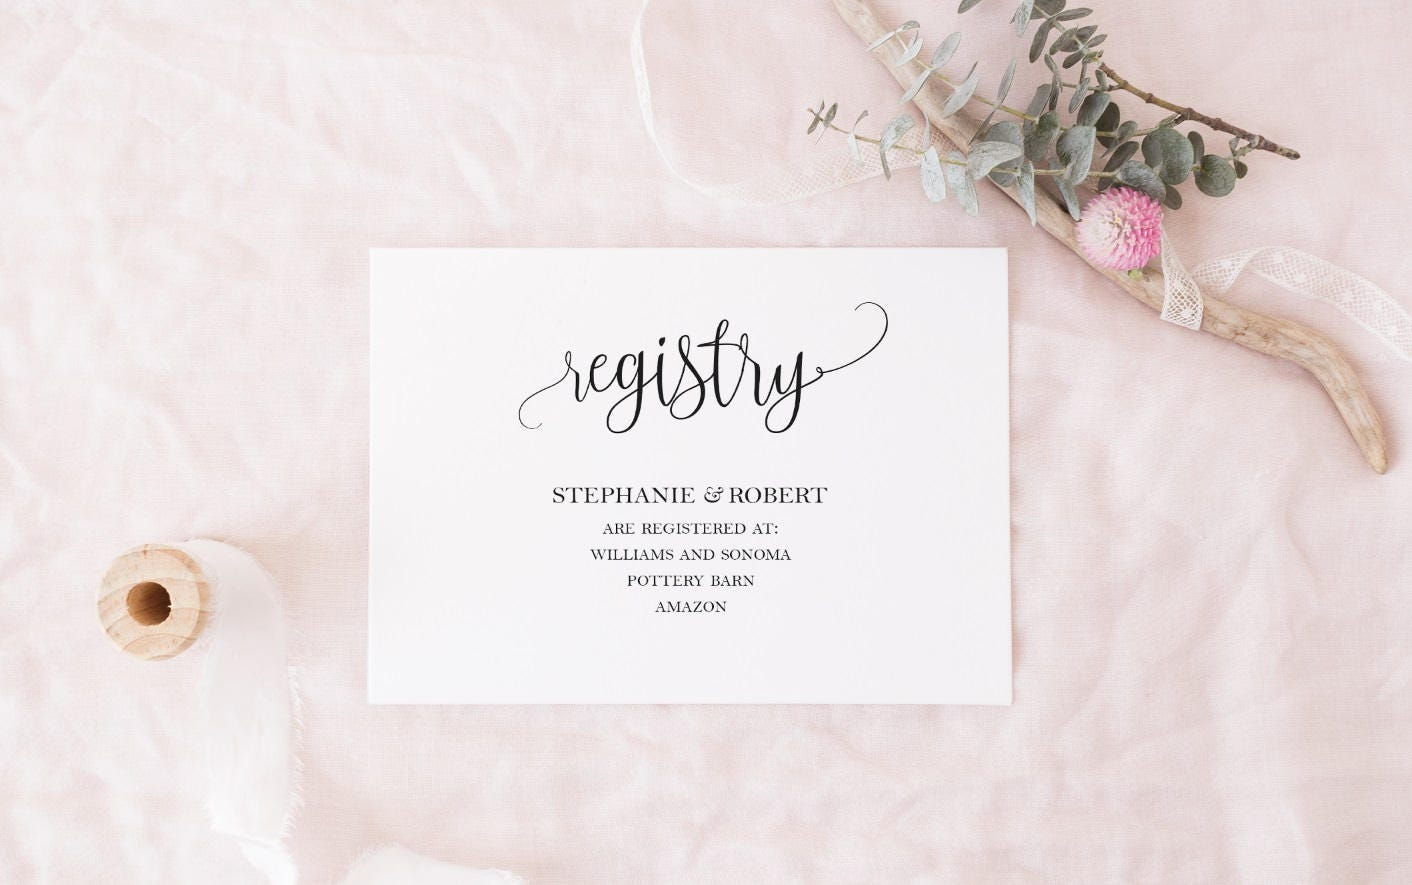 Black and White Registry Cards Template DIY Gift Registry Card | Etsy